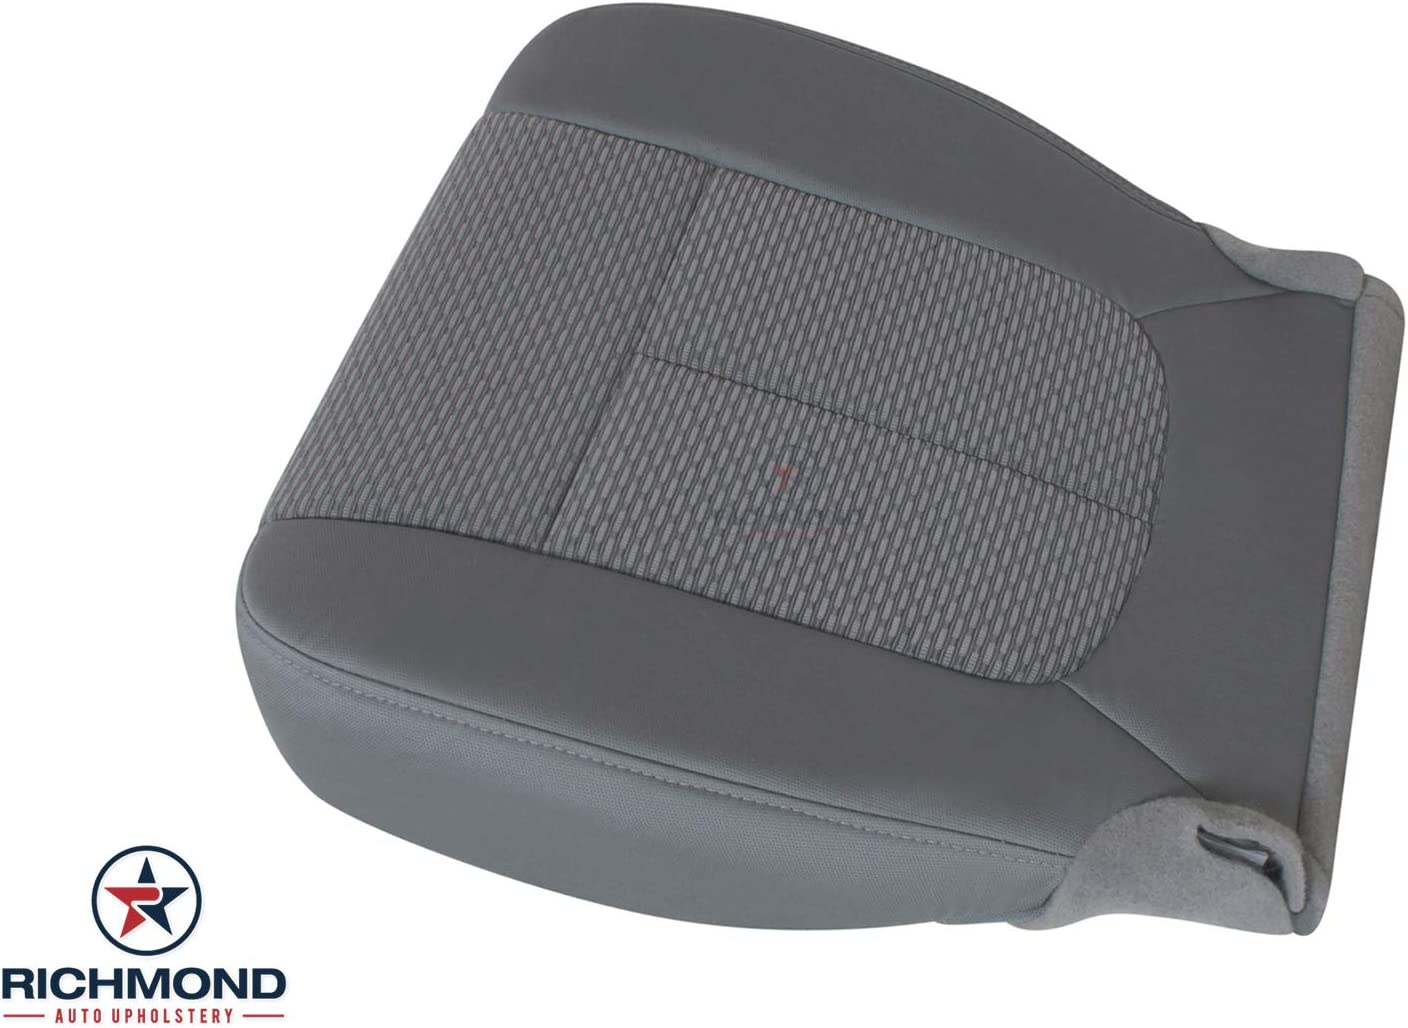 Driver Side Bottom Replacement Cloth Seat Cover Compatible with 2011-2016 Ford F-250 XLT Steel Gray Gray Richmond Auto Upholstery